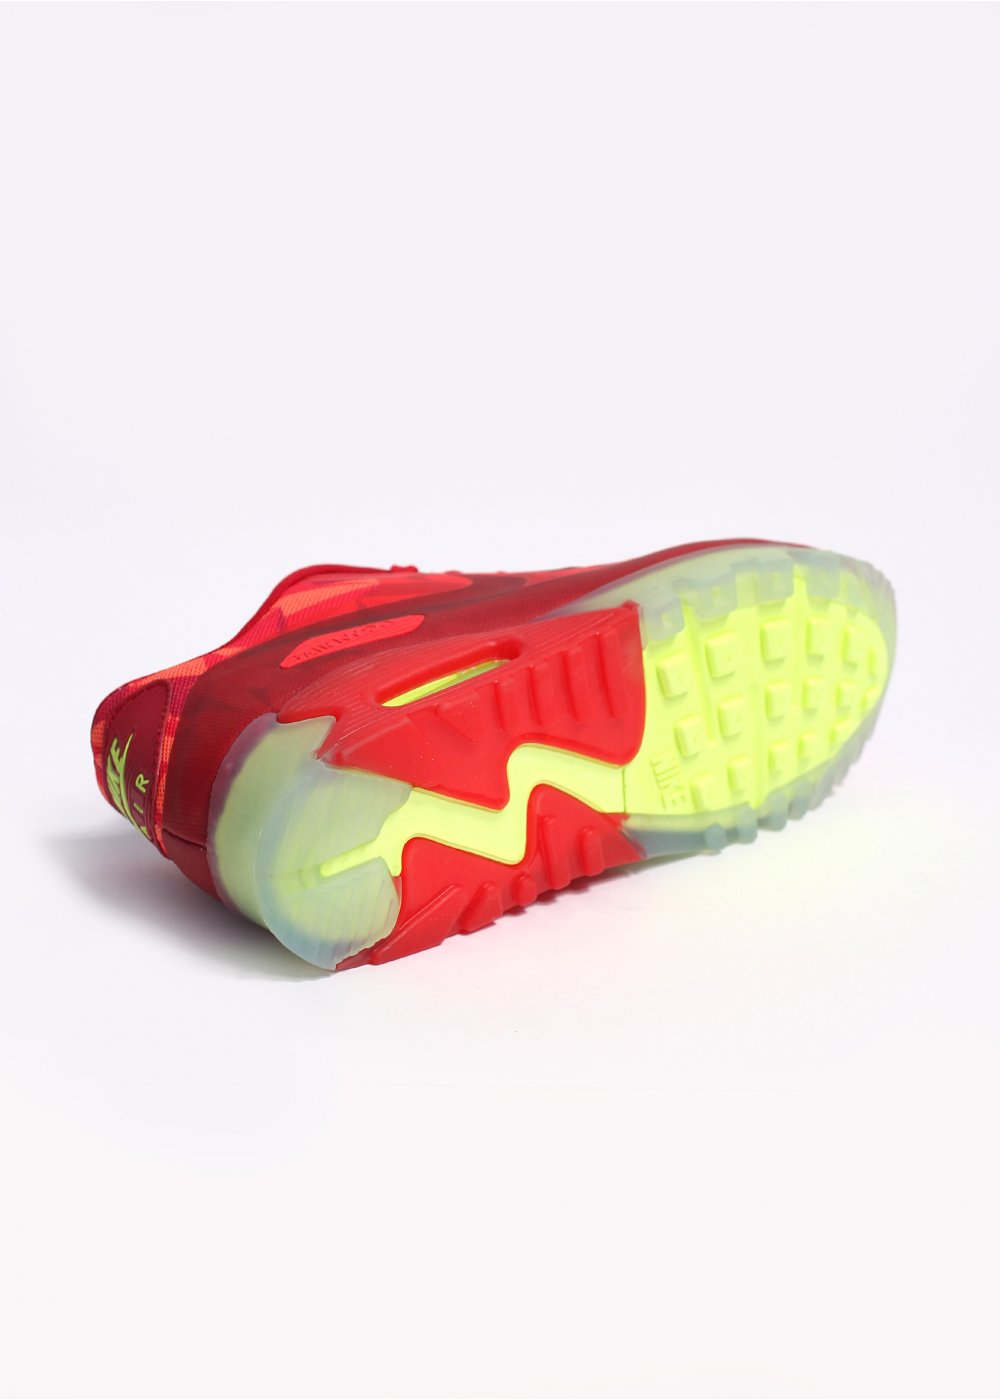 competitive price 2e4a5 fcc86 Air Max 90  quot Ice Pack quot  Trainers - Gym Red   University Red